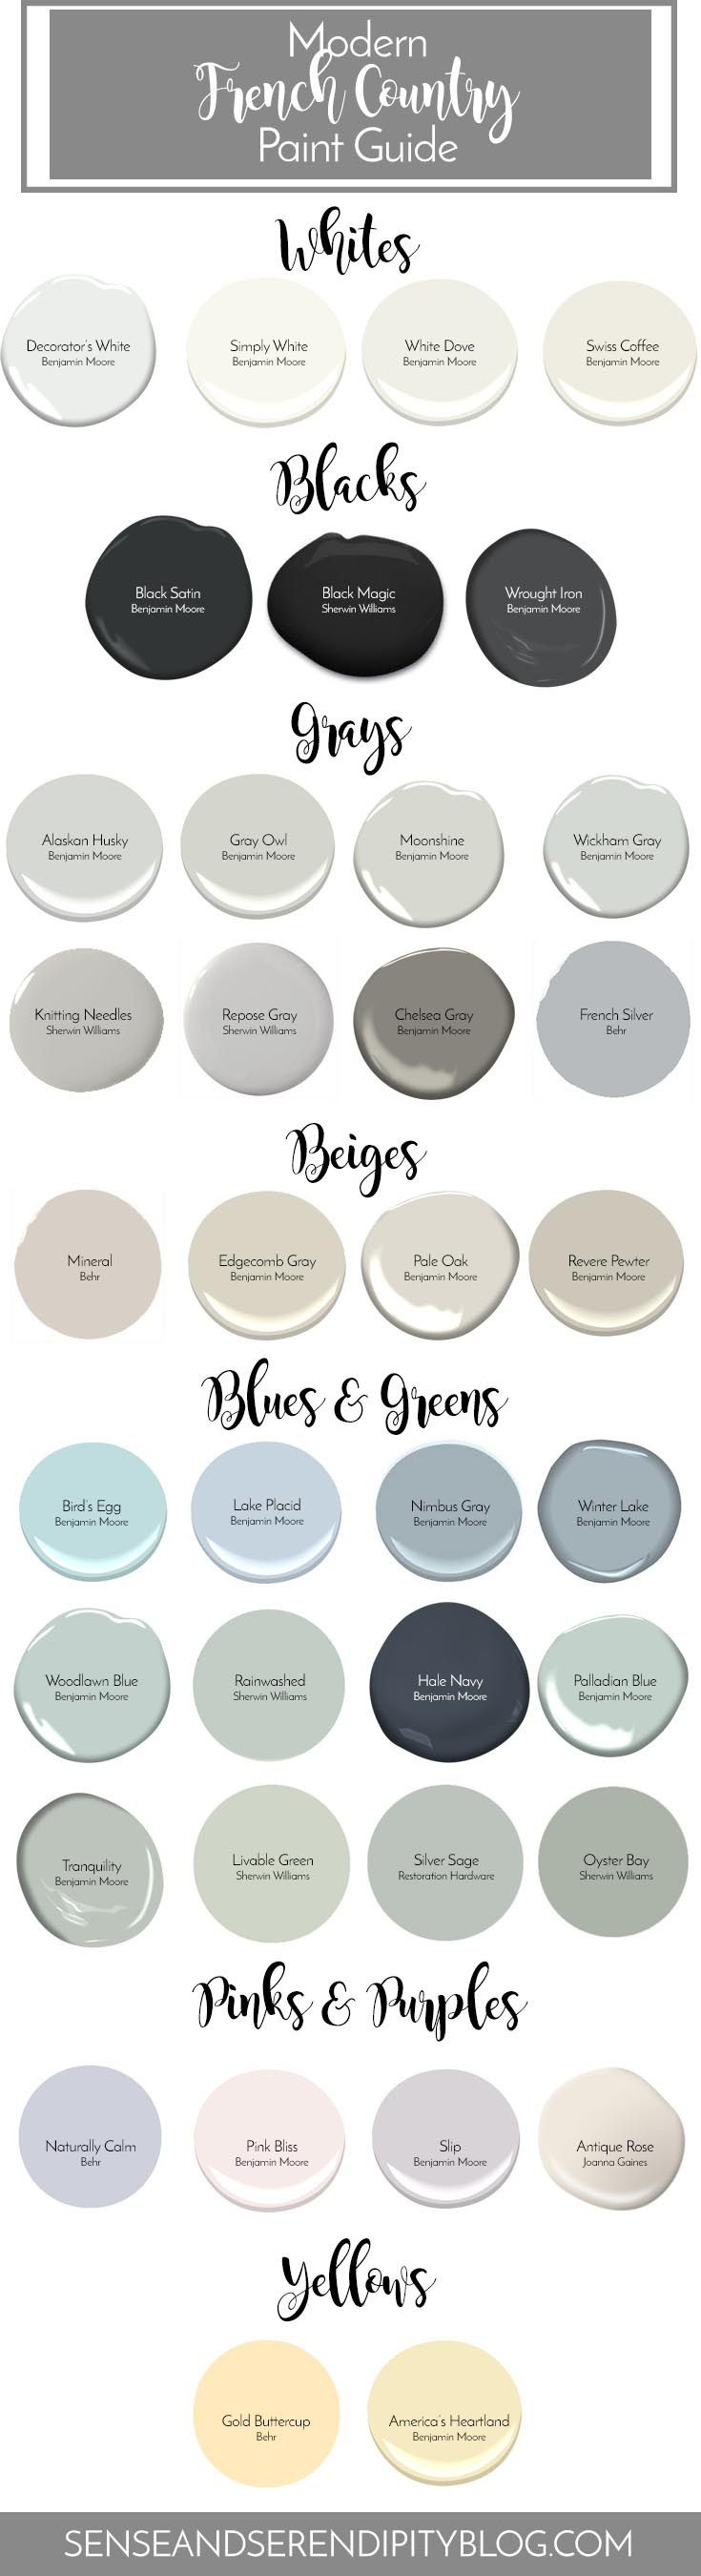 327 best paint colors images on pinterest bedrooms for Country home interior paint colors